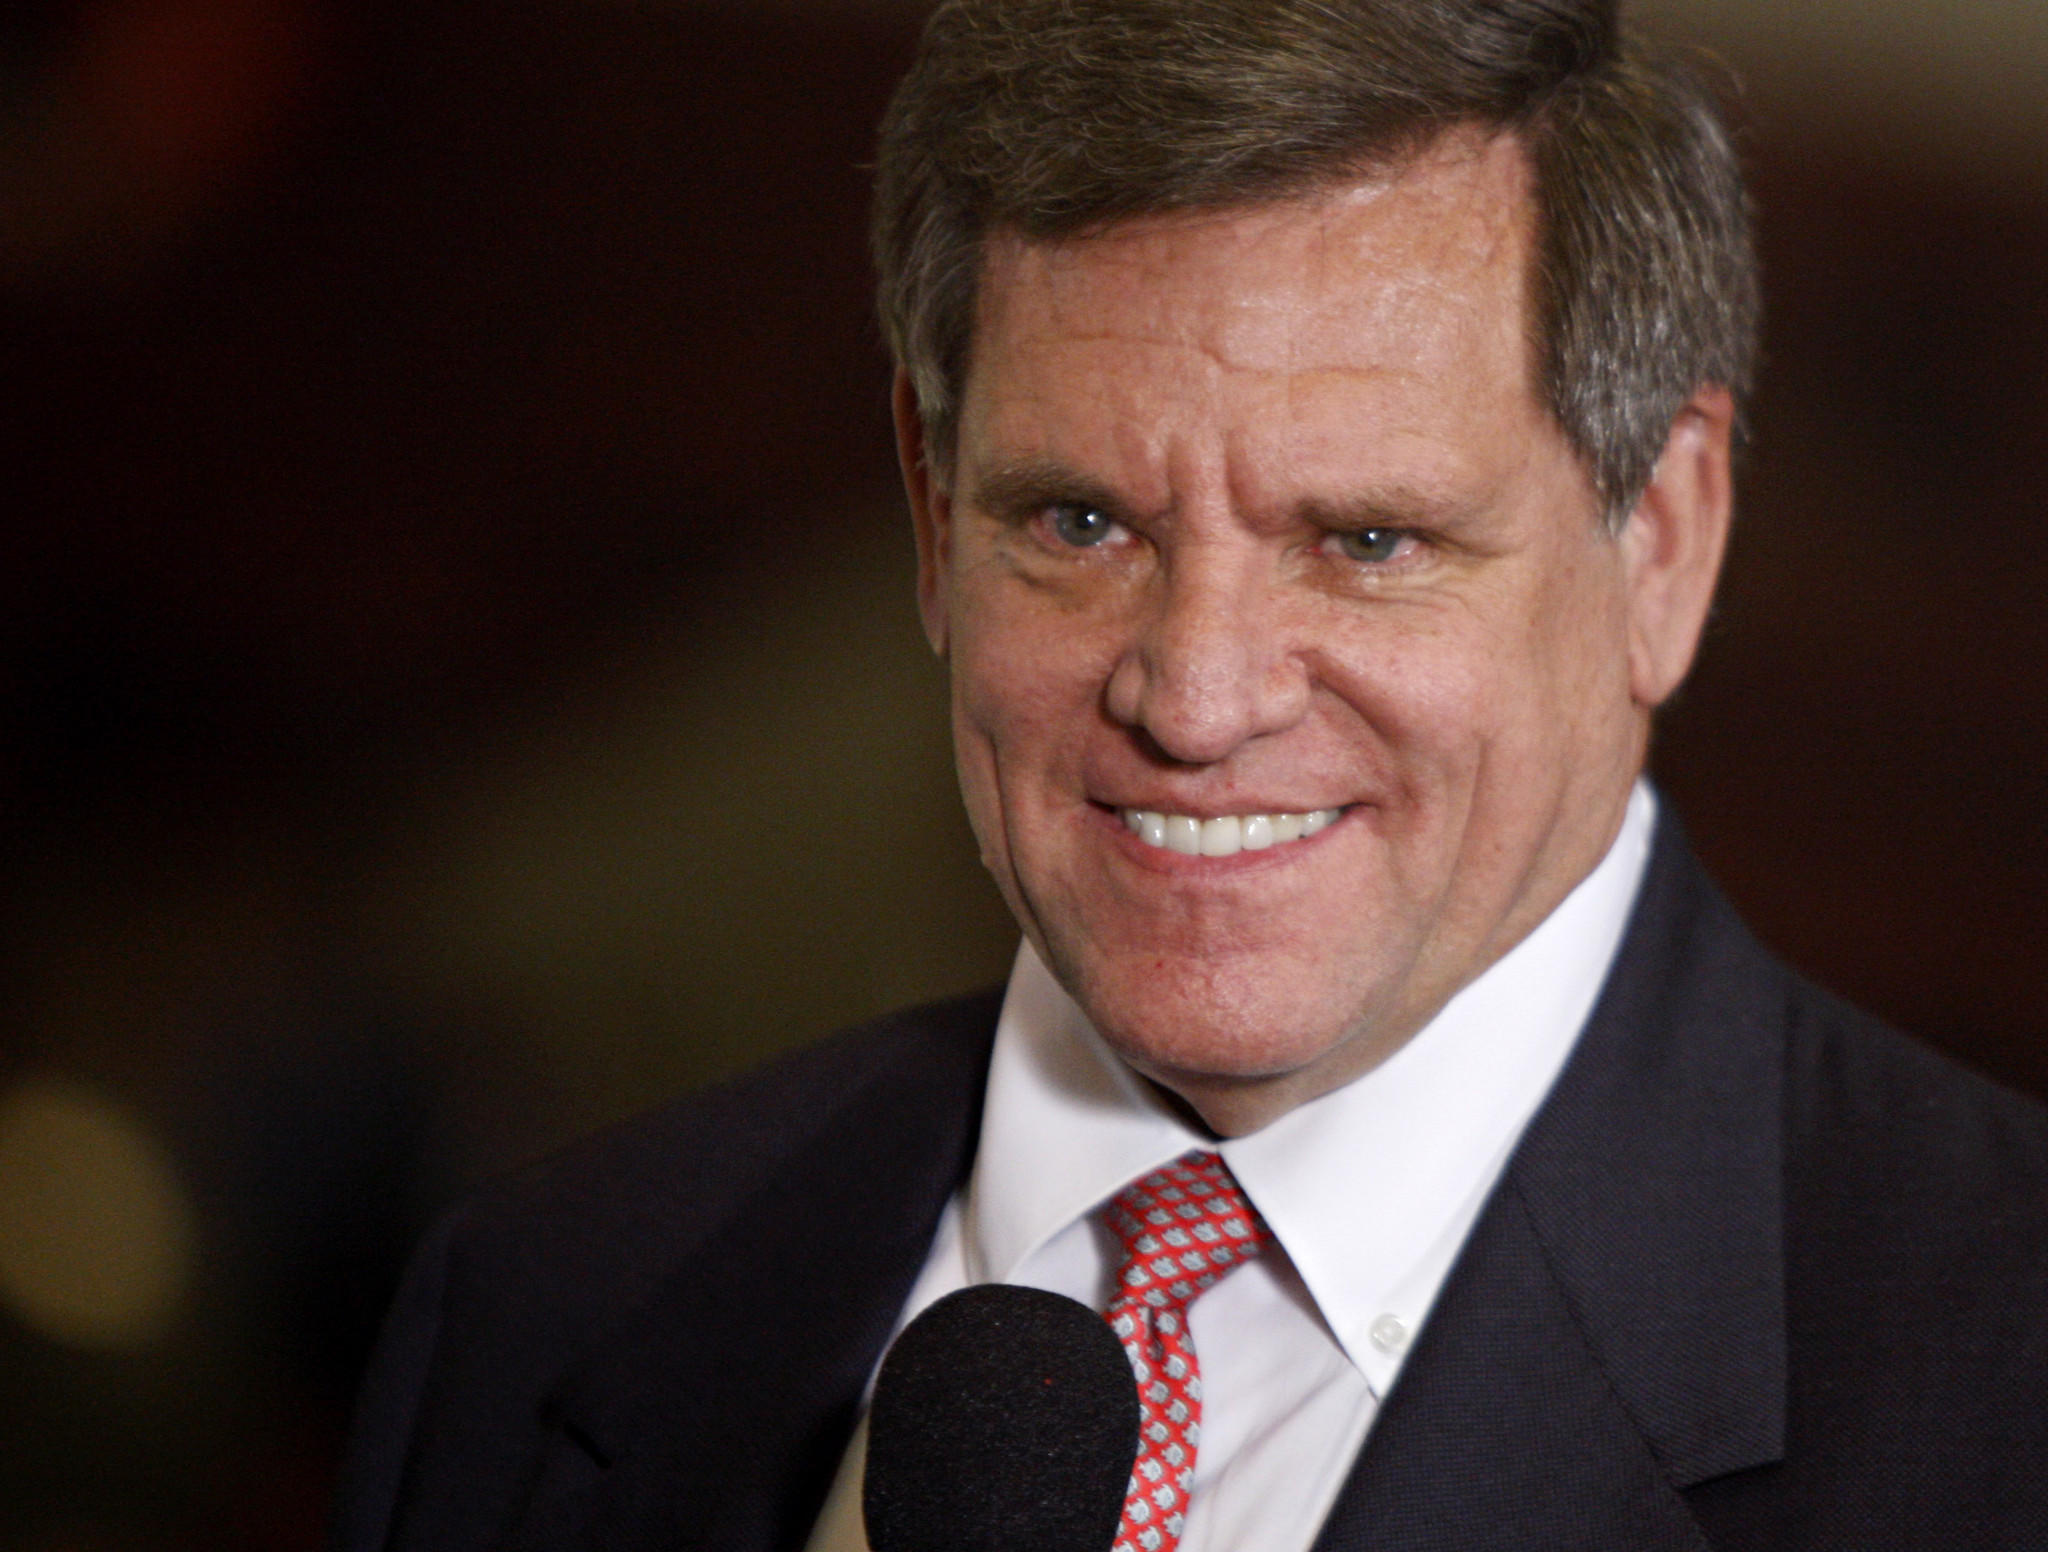 Chicago Blackhawks owner Rocky Wirtz had reasons to smile during the 2010 Stanley Cup Finals.